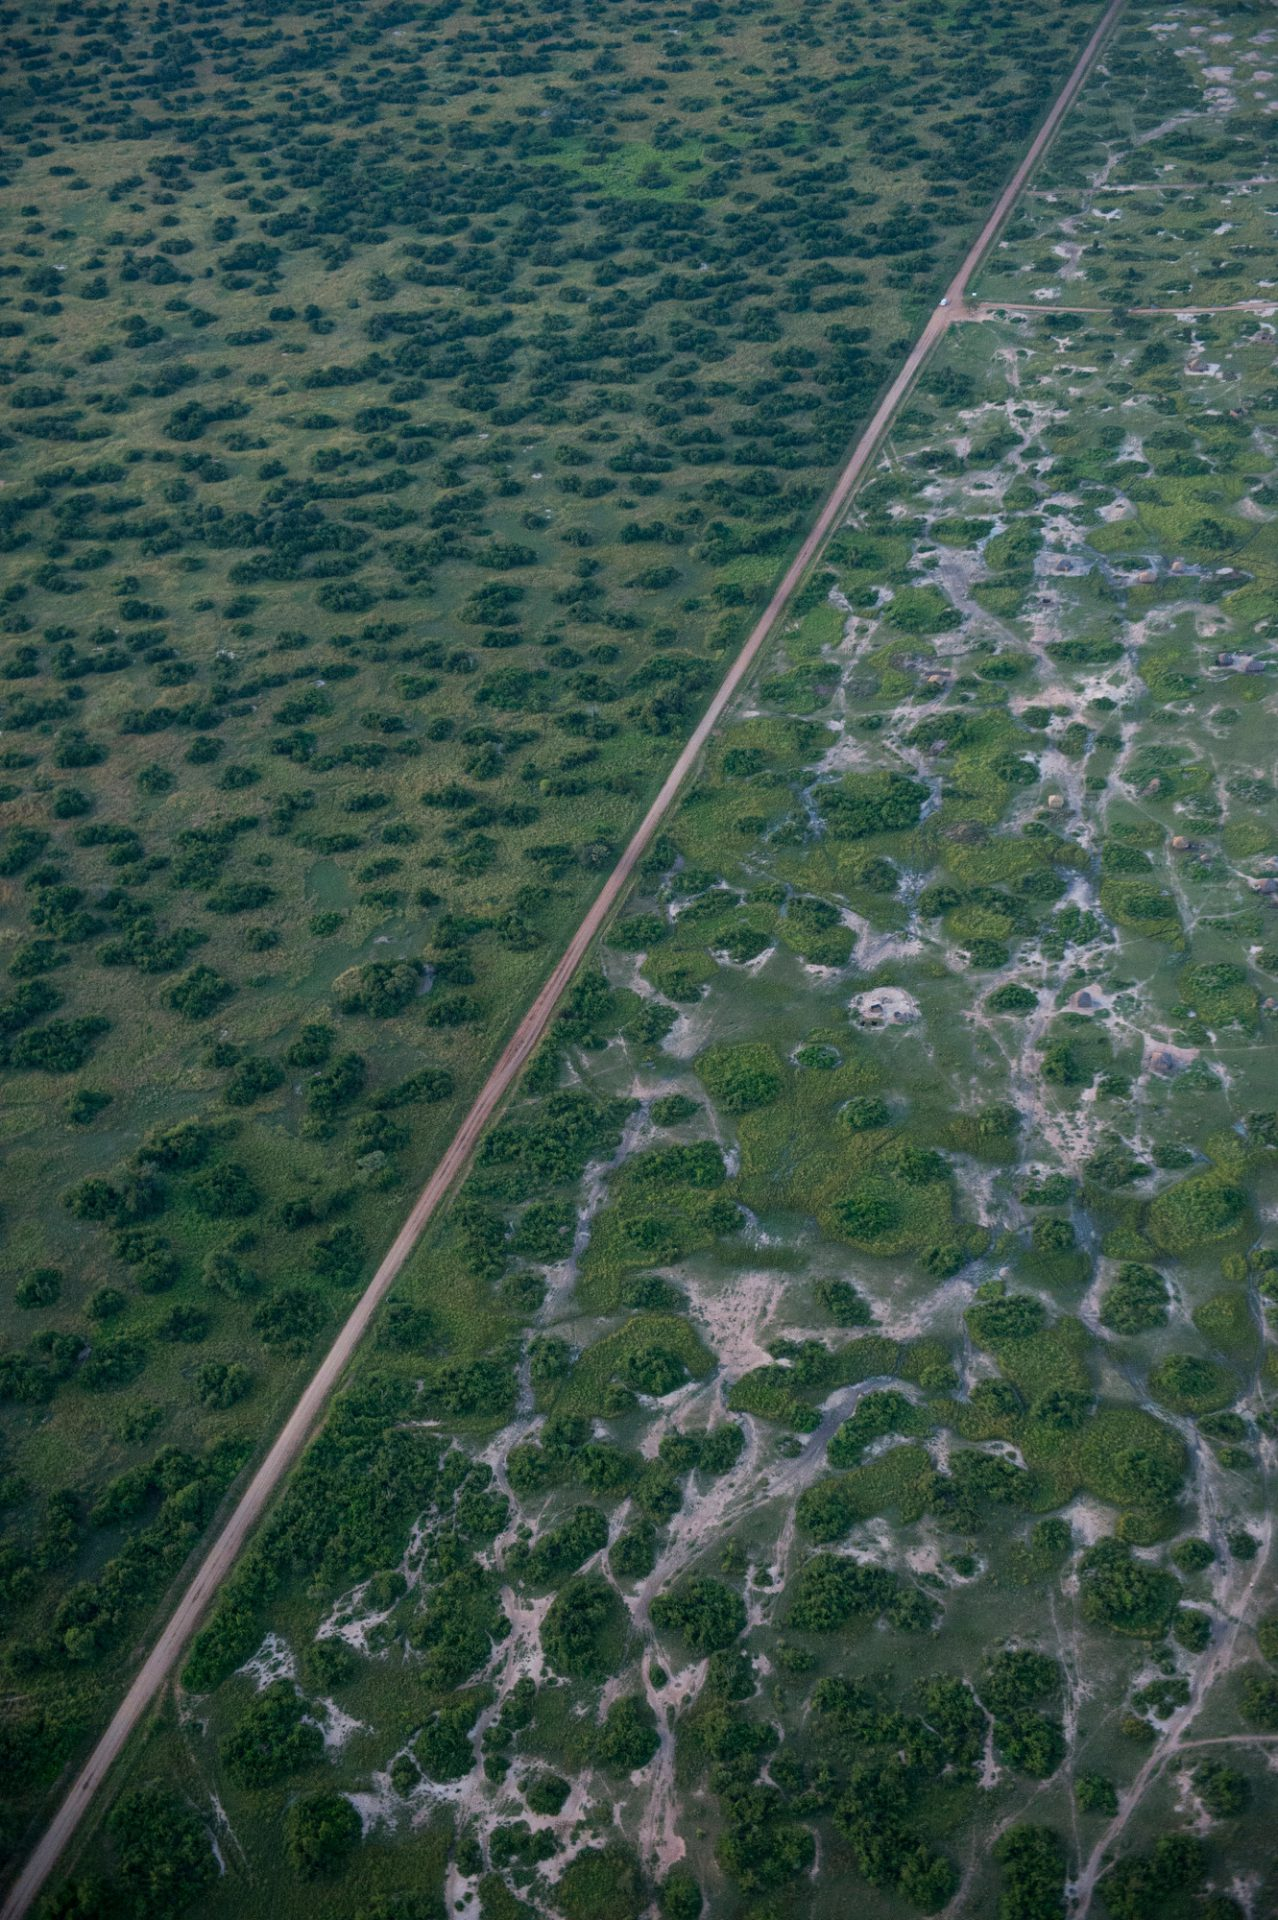 Photo: A road divides where cattle have overgrazed the landscape.